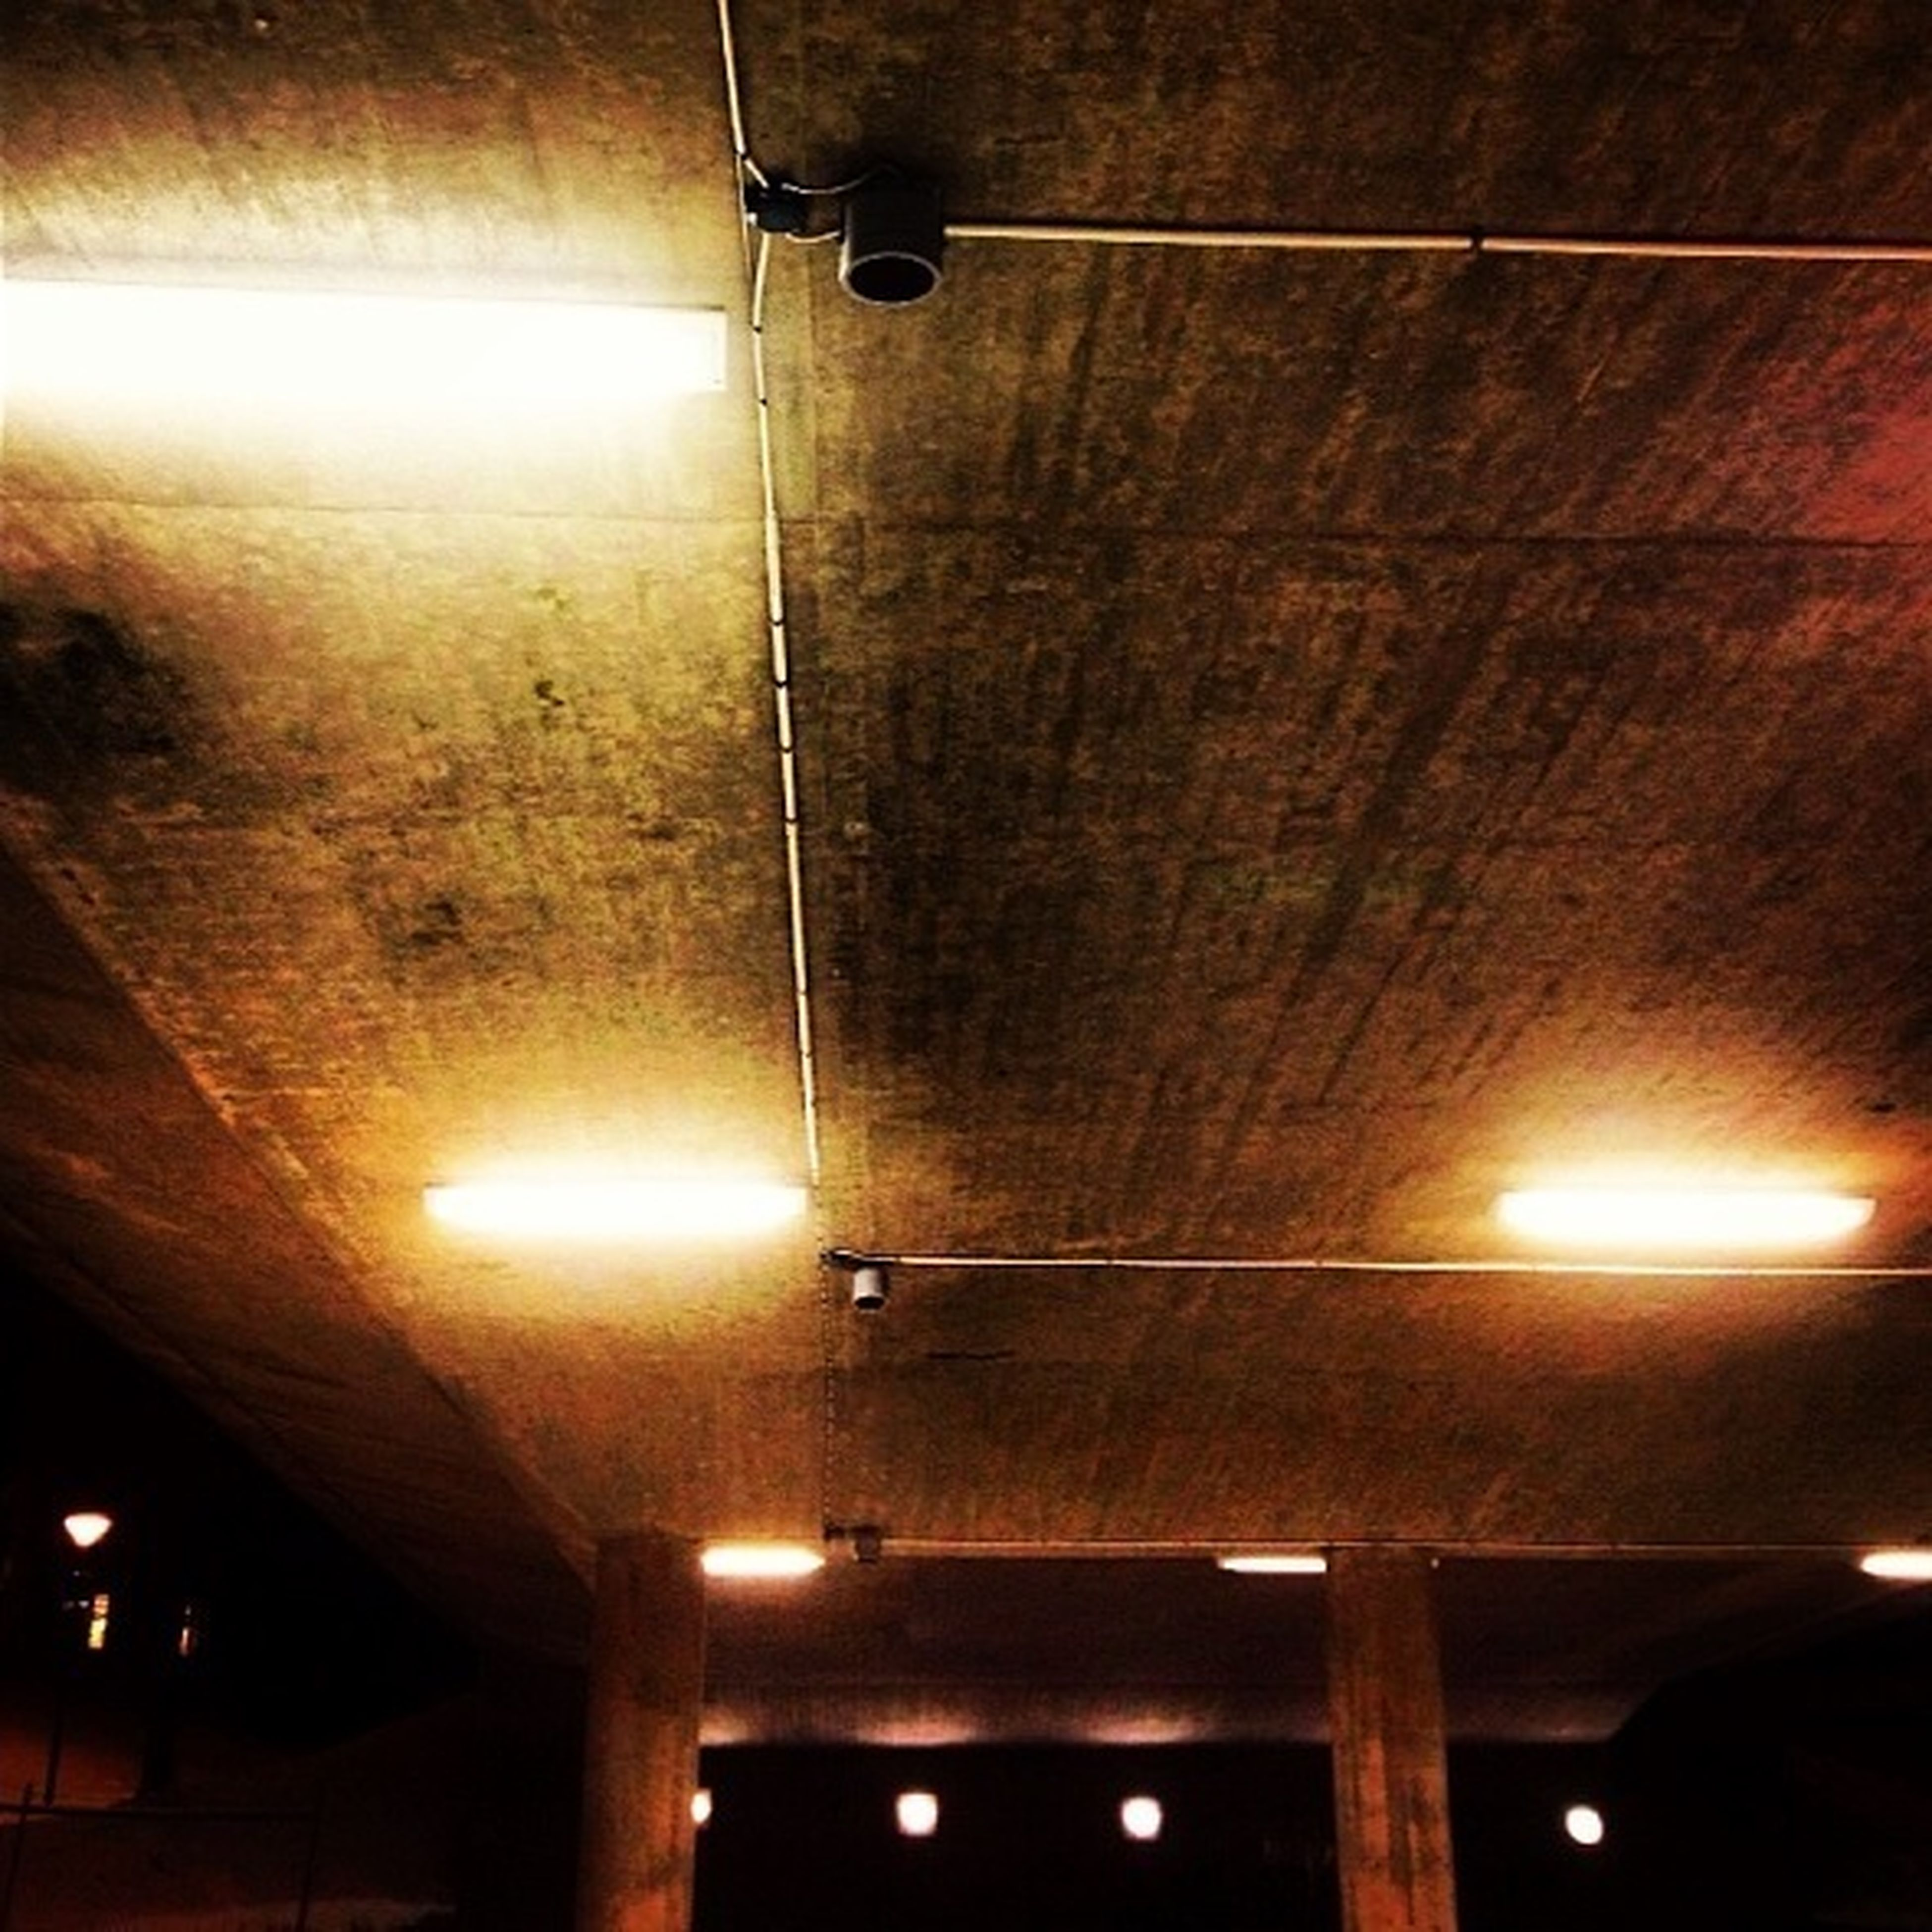 illuminated, indoors, ceiling, lighting equipment, low angle view, electricity, electric light, light - natural phenomenon, interior, architecture, built structure, night, lamp, hanging, glowing, electric lamp, lit, no people, technology, in a row